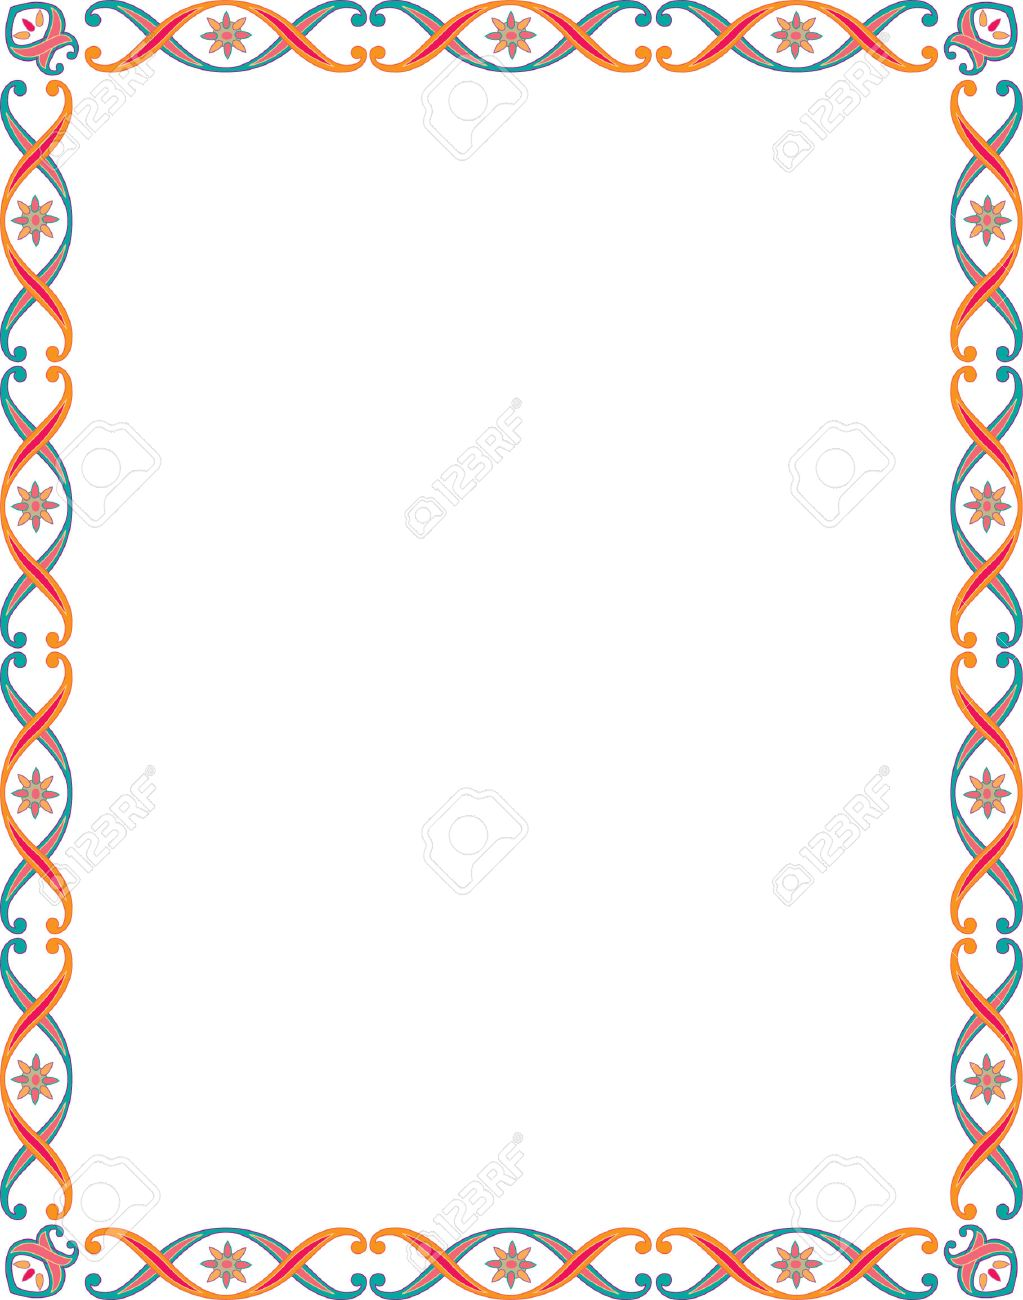 Beautiful basic border frame, colored Stock Vector - 23314466